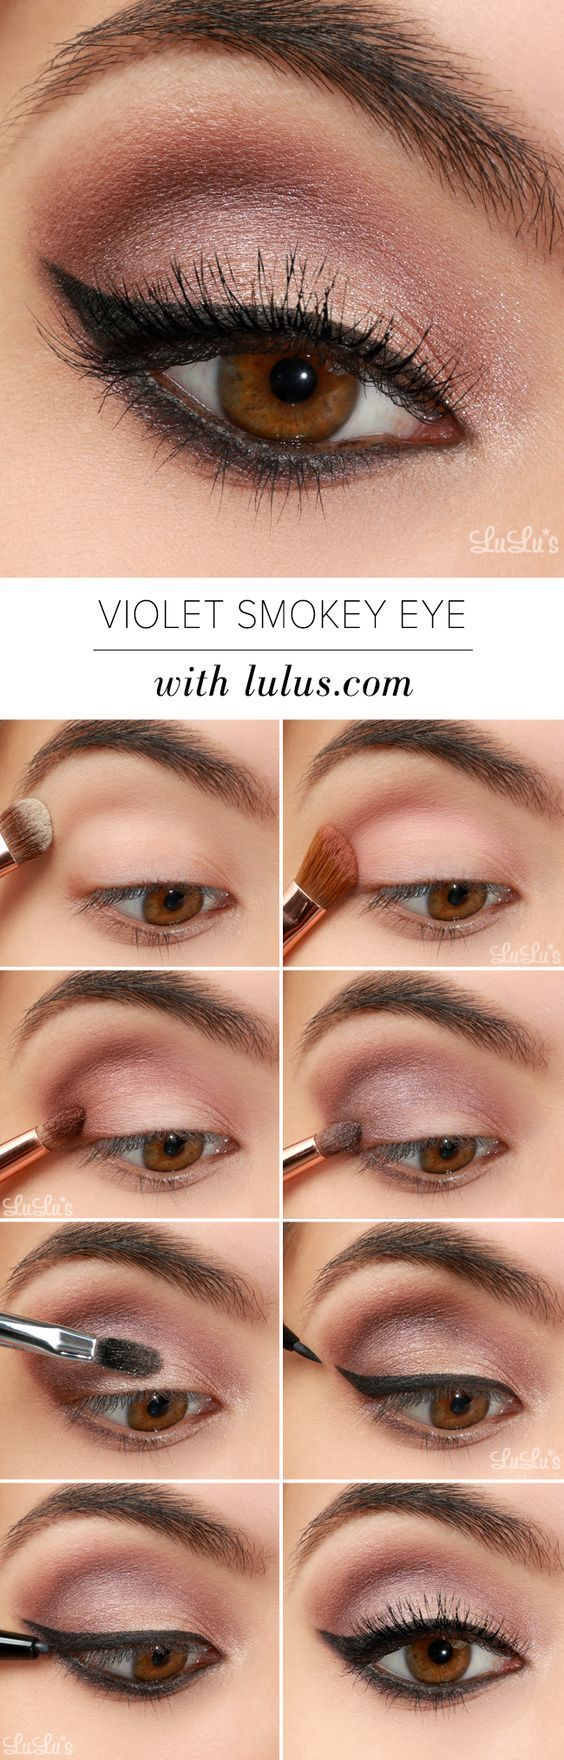 How to step by step eye makeup tutorials and guides for beginners how to step by step eye makeup tutorials and guides for beginners eye makeup tutorials makeup and tutorials baditri Choice Image